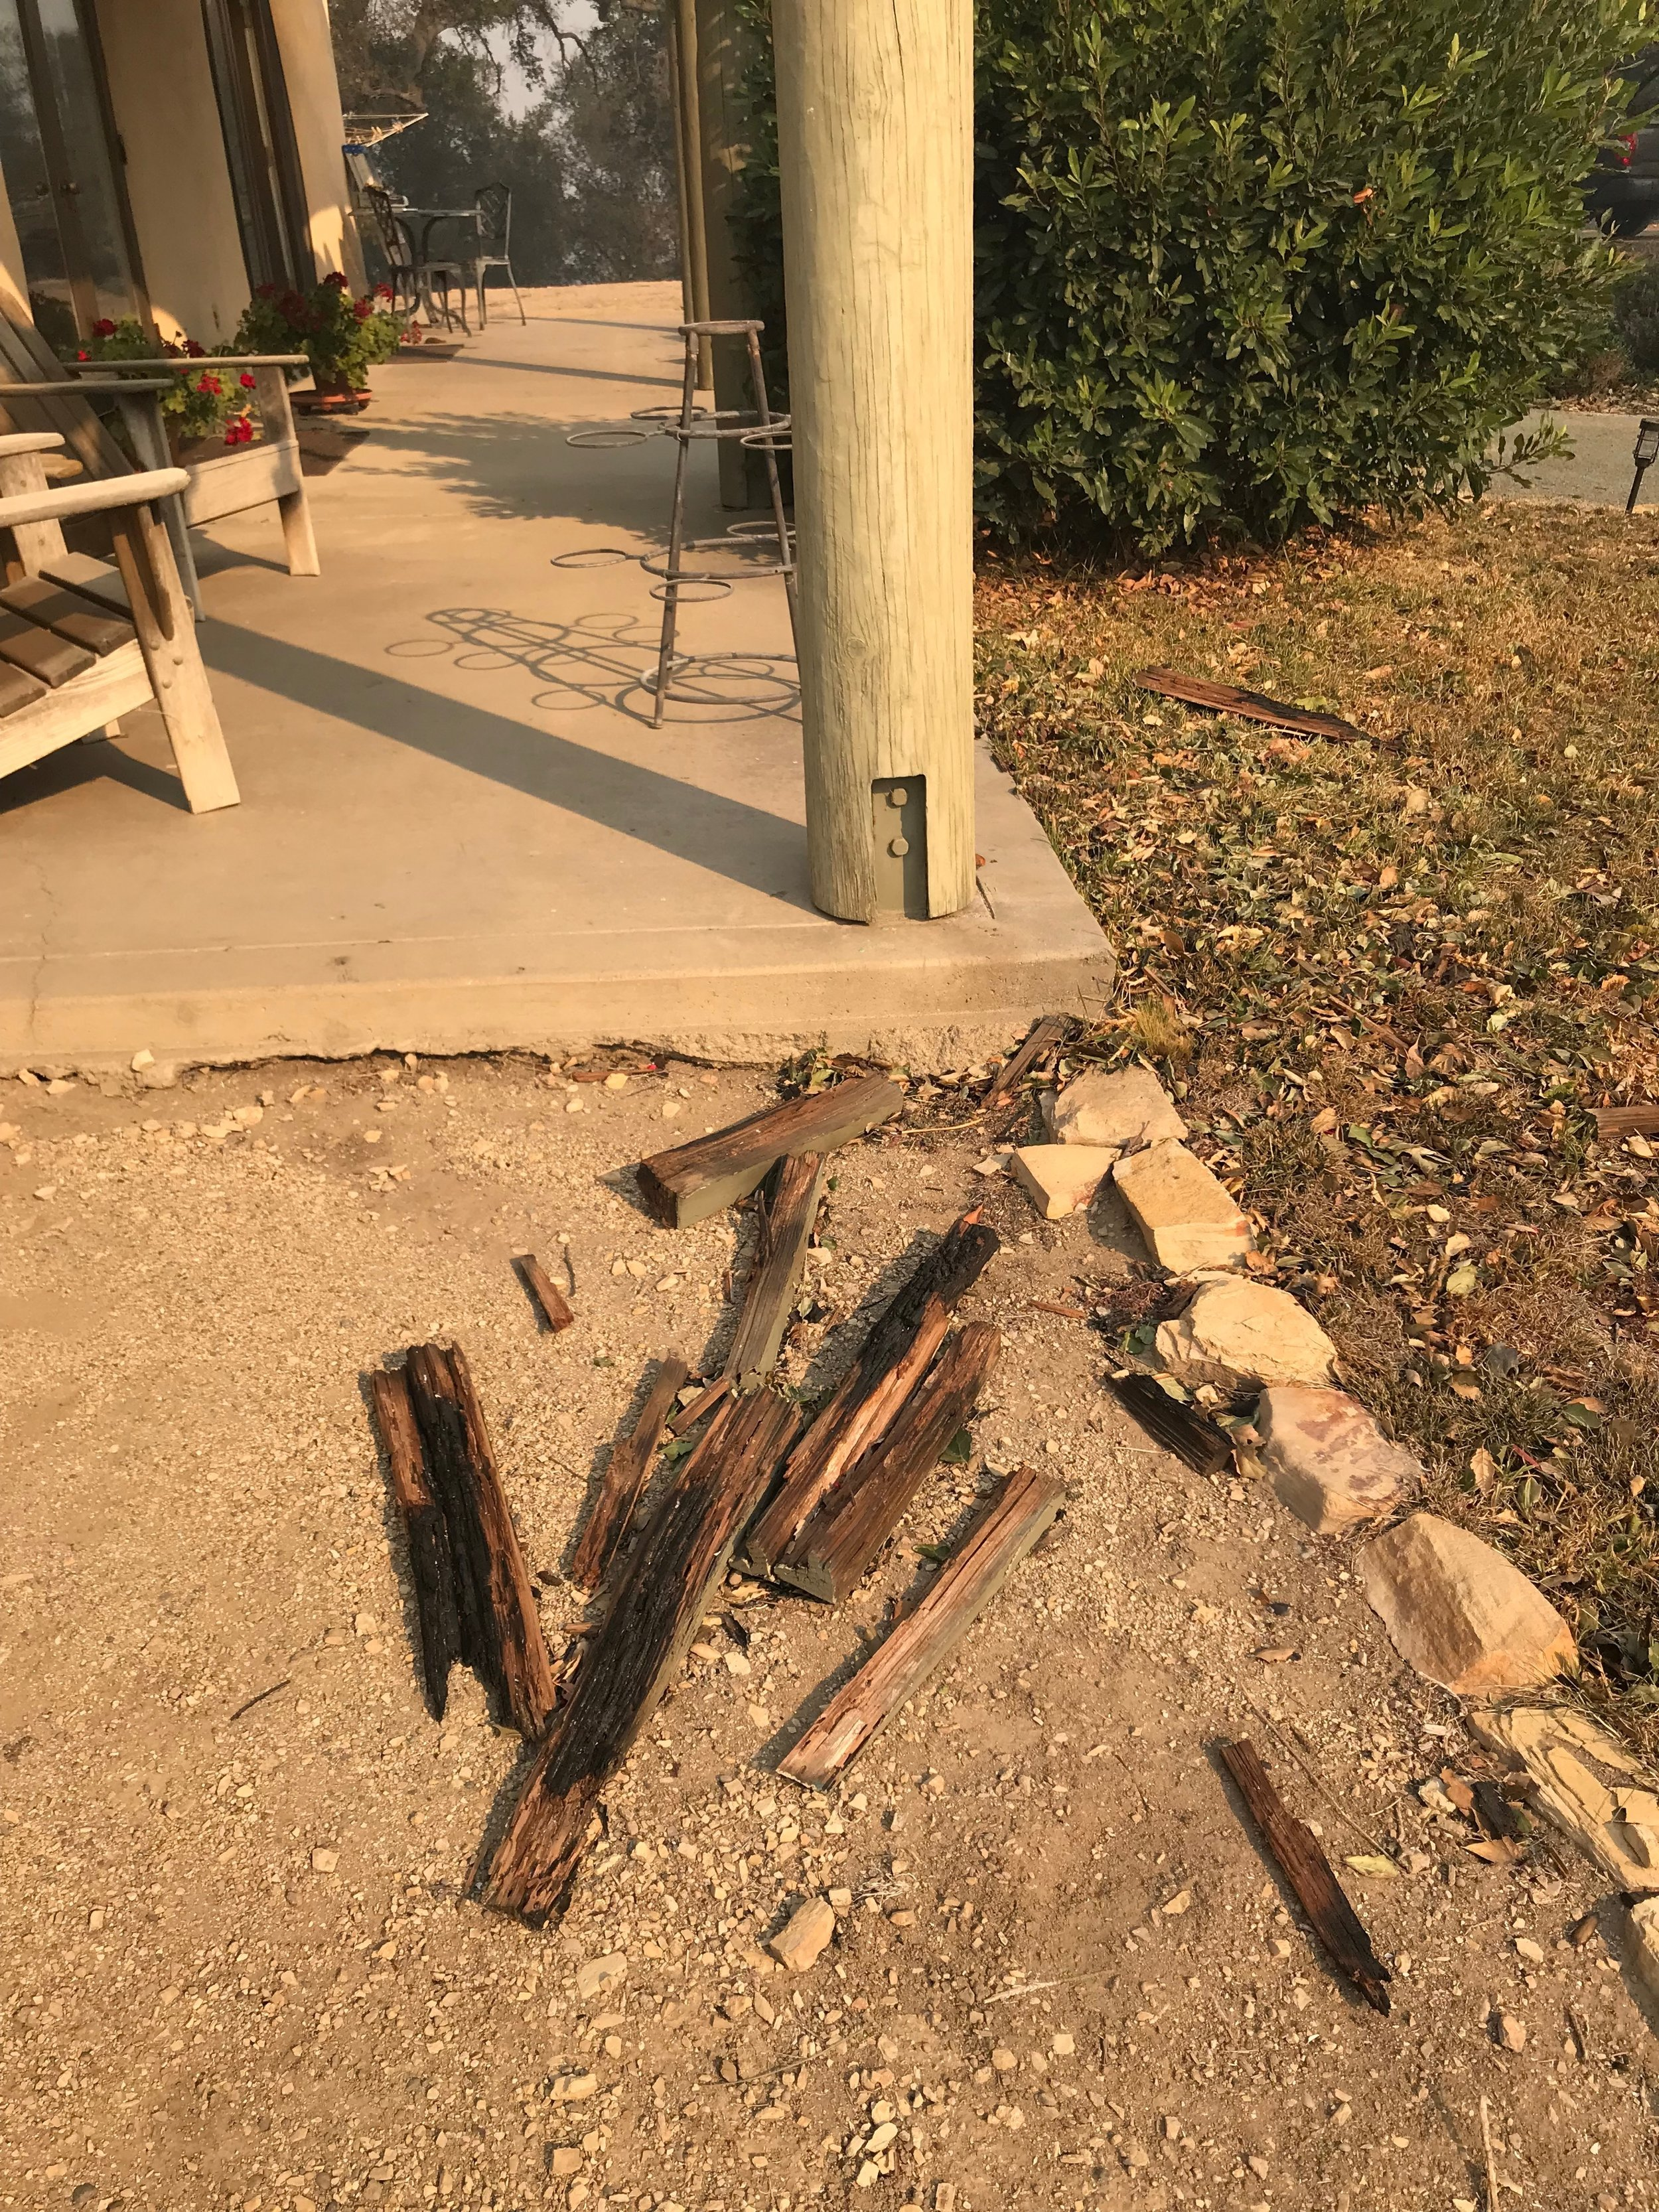 BURNED PIECES from the patio trellis of the Visitor Center/Caretaker Quarters at Meher Mount are a testament to how close the 2017 Thomas Fire came destroying the entire the building. (Photo: Buzz Glasky, December 2017)